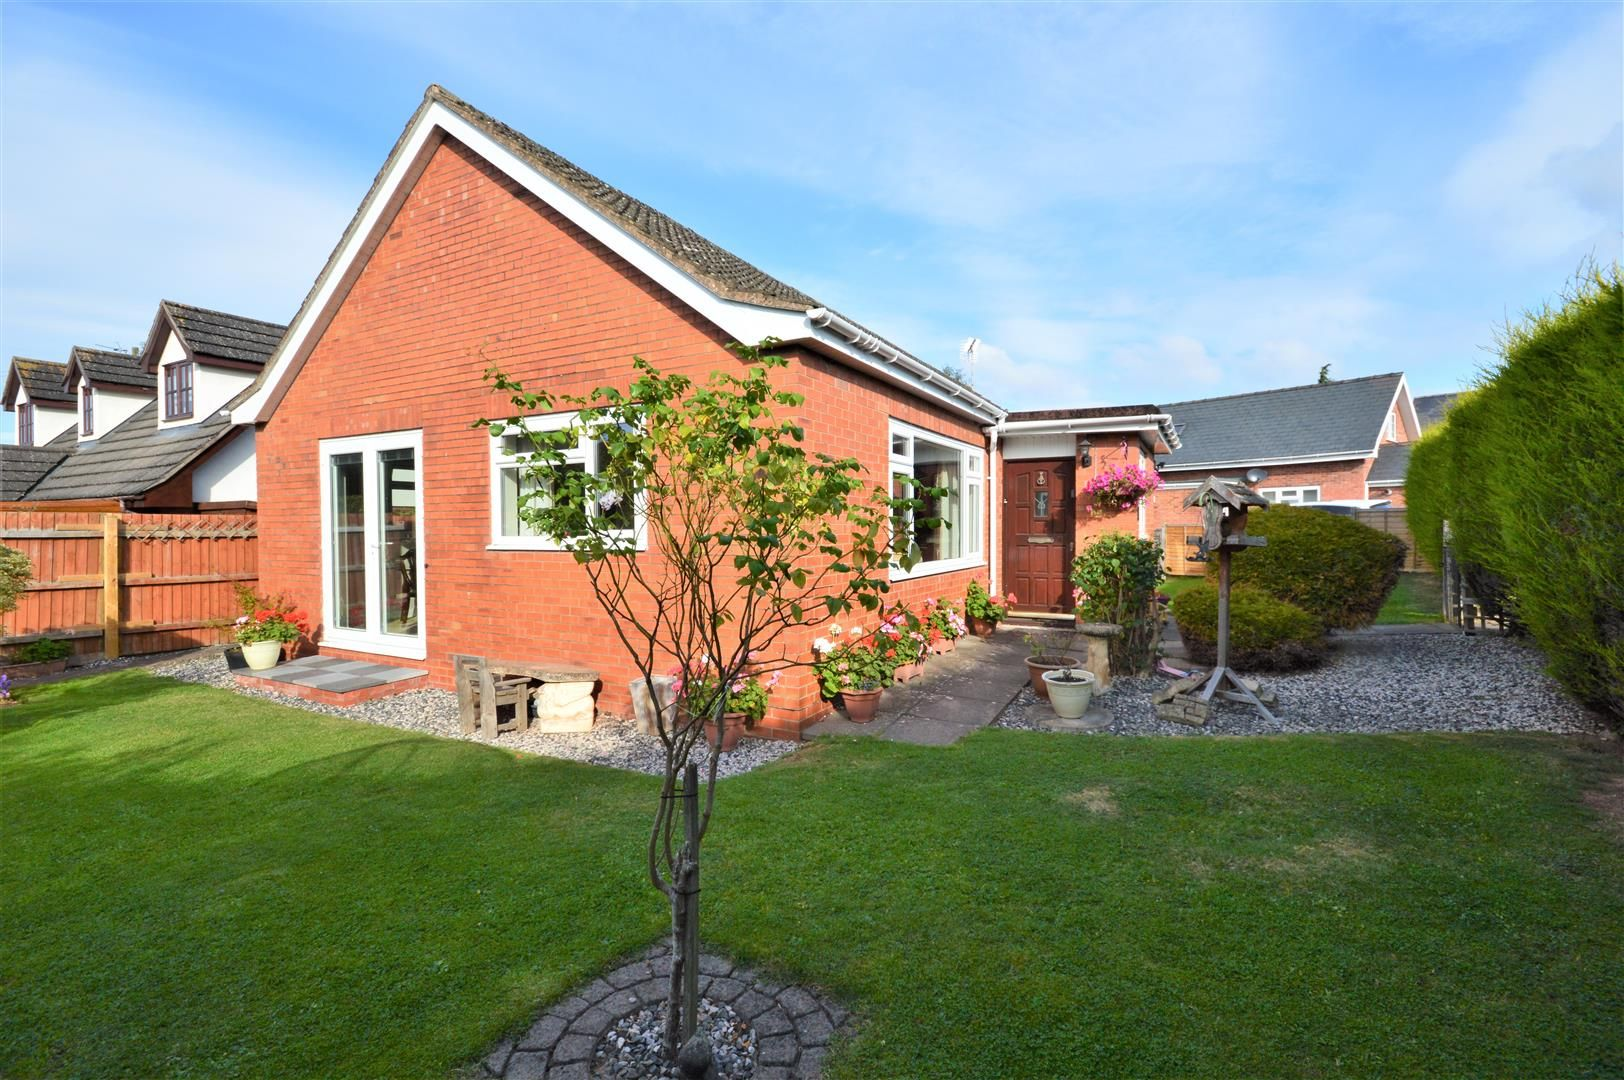 4 bed detached-bungalow for sale in Marden 1